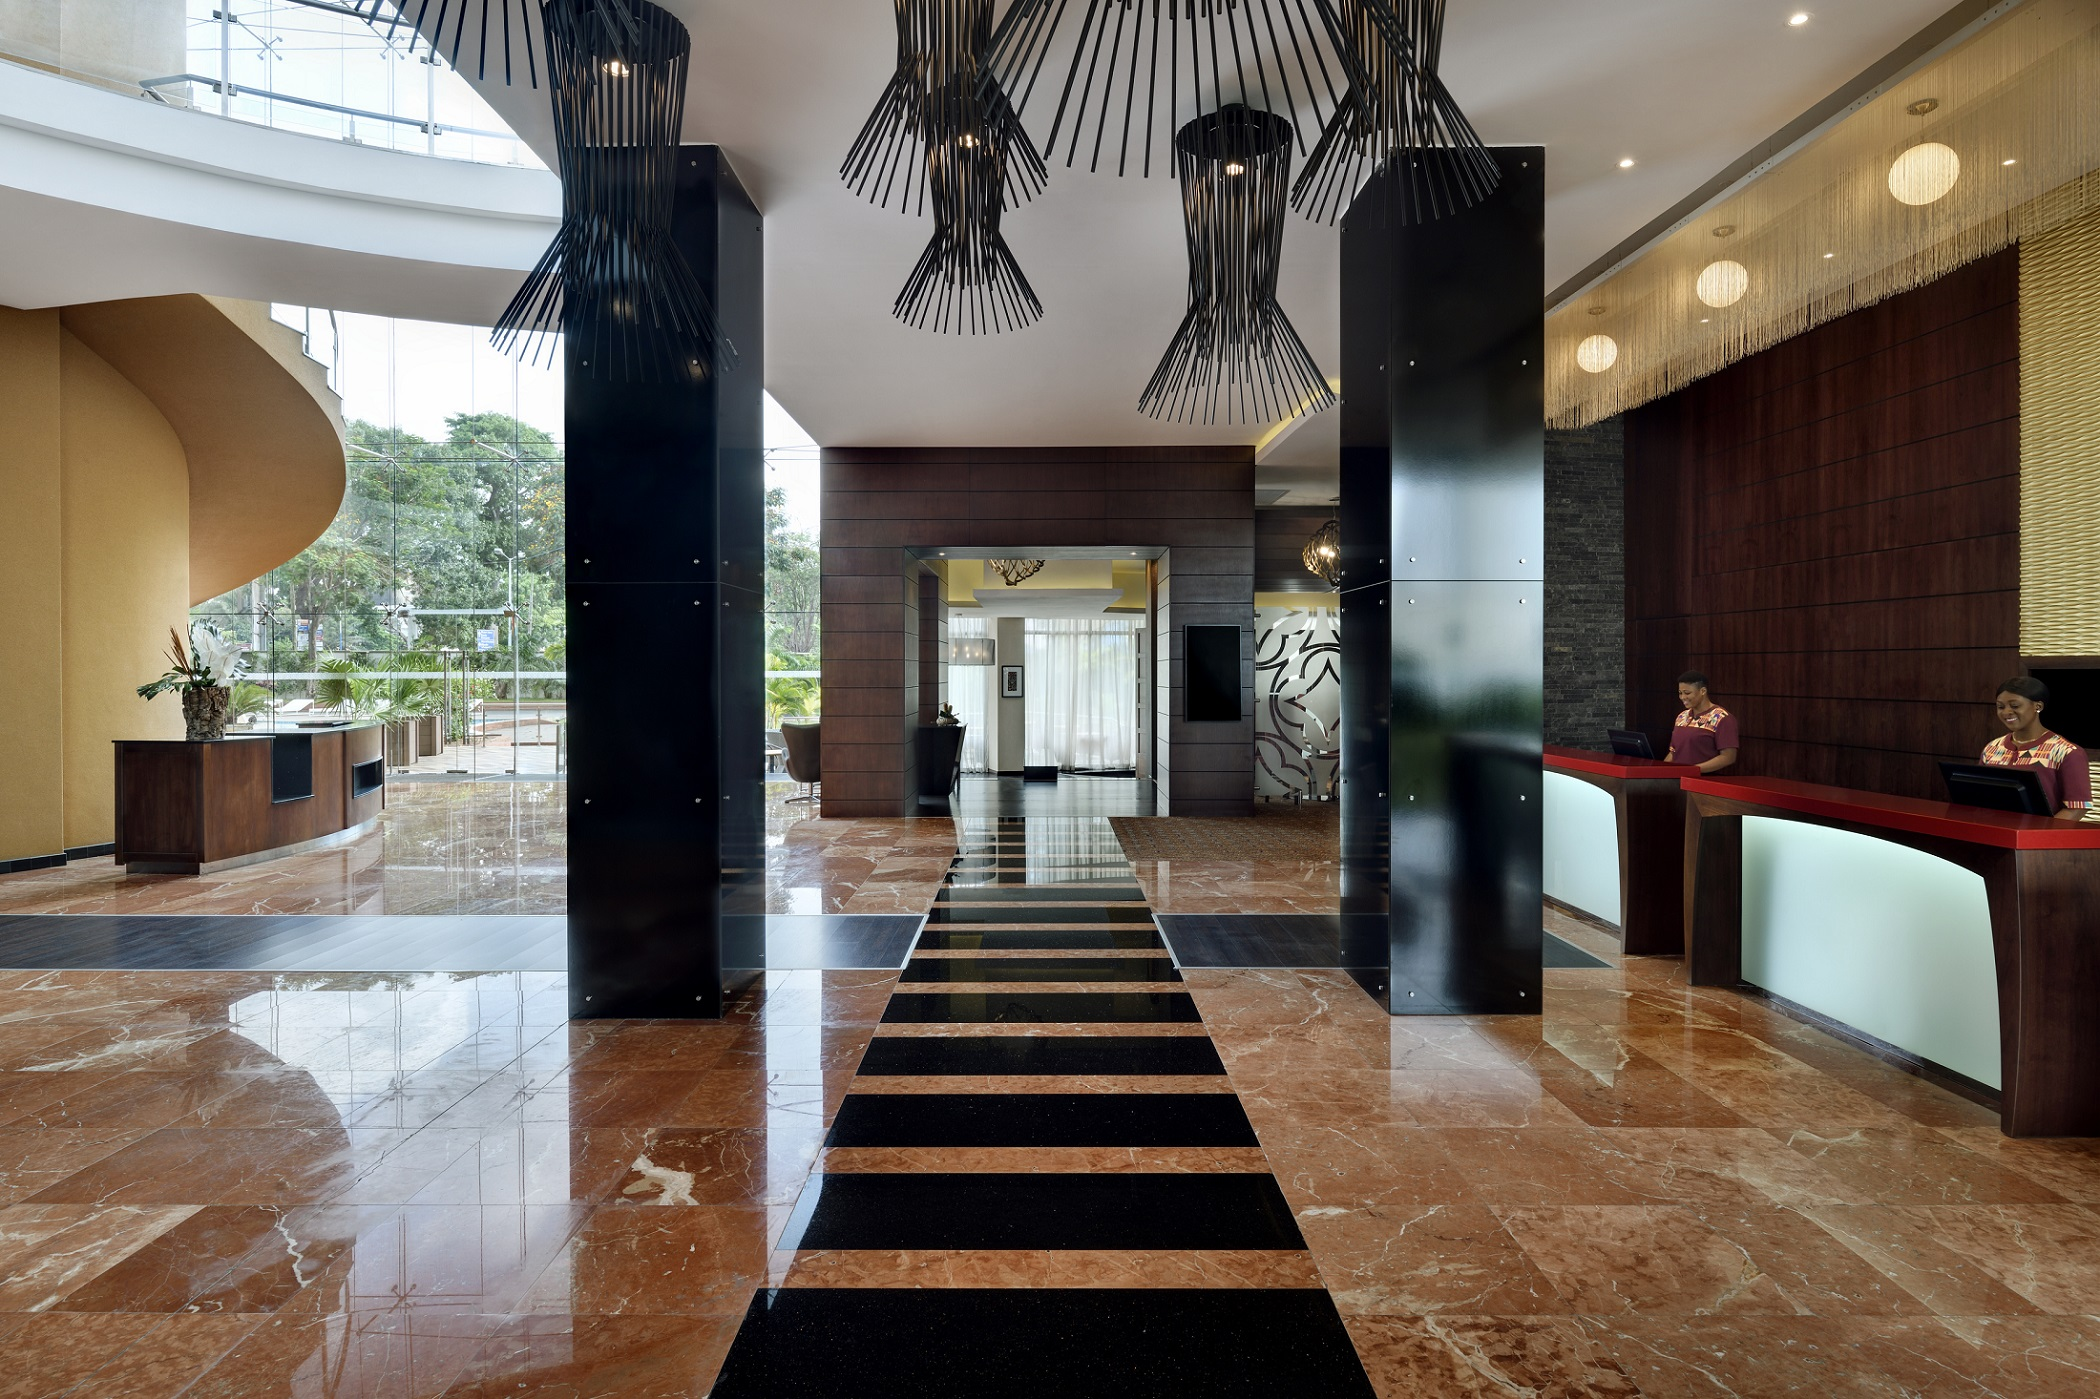 Marriott Hotels Debut in West Africa with the opening of Accra Marriott Hotel, Ghana (Pictures)